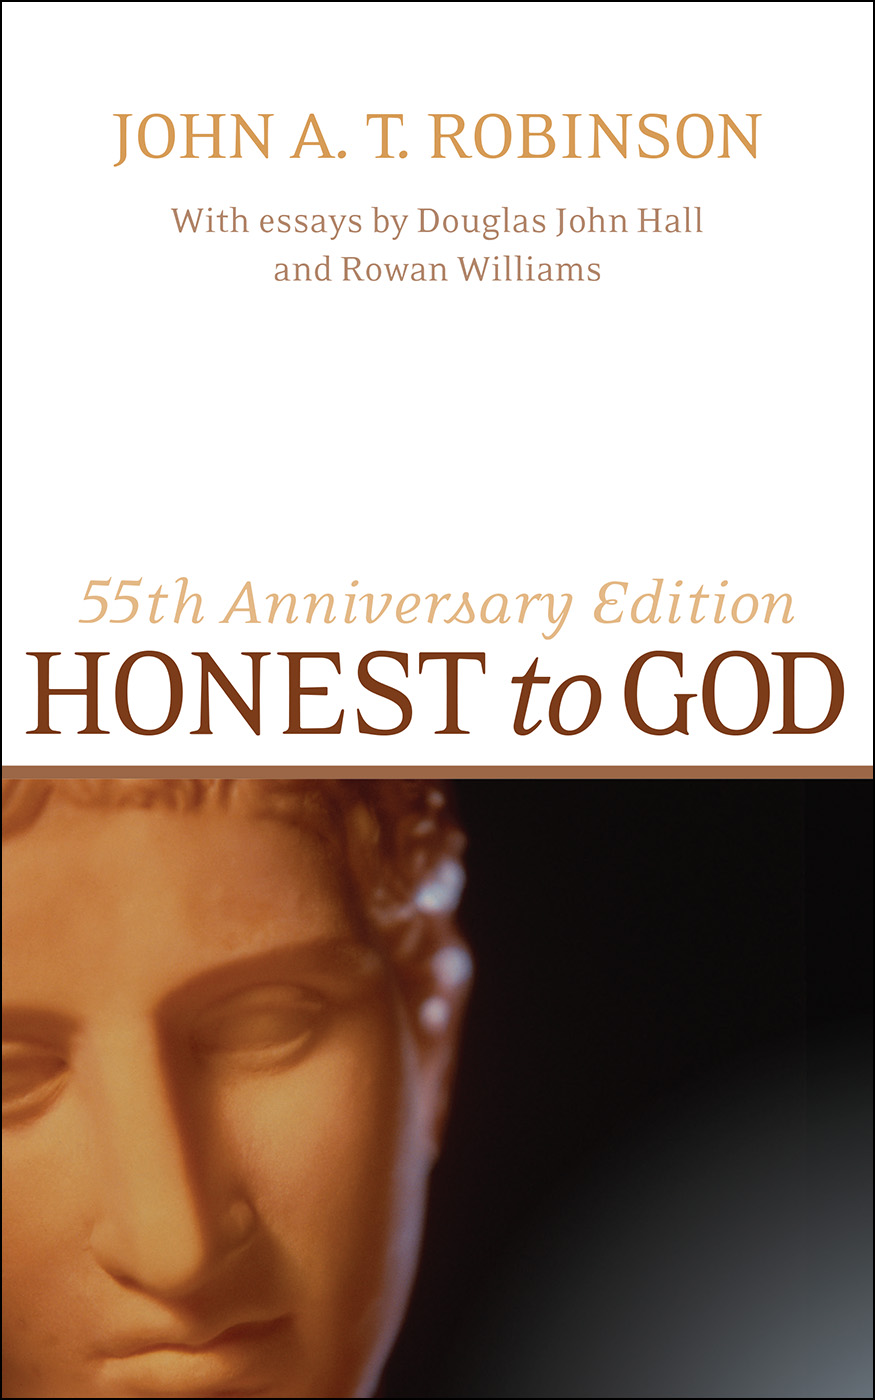 Honest to God, 55th Anniversary Edition